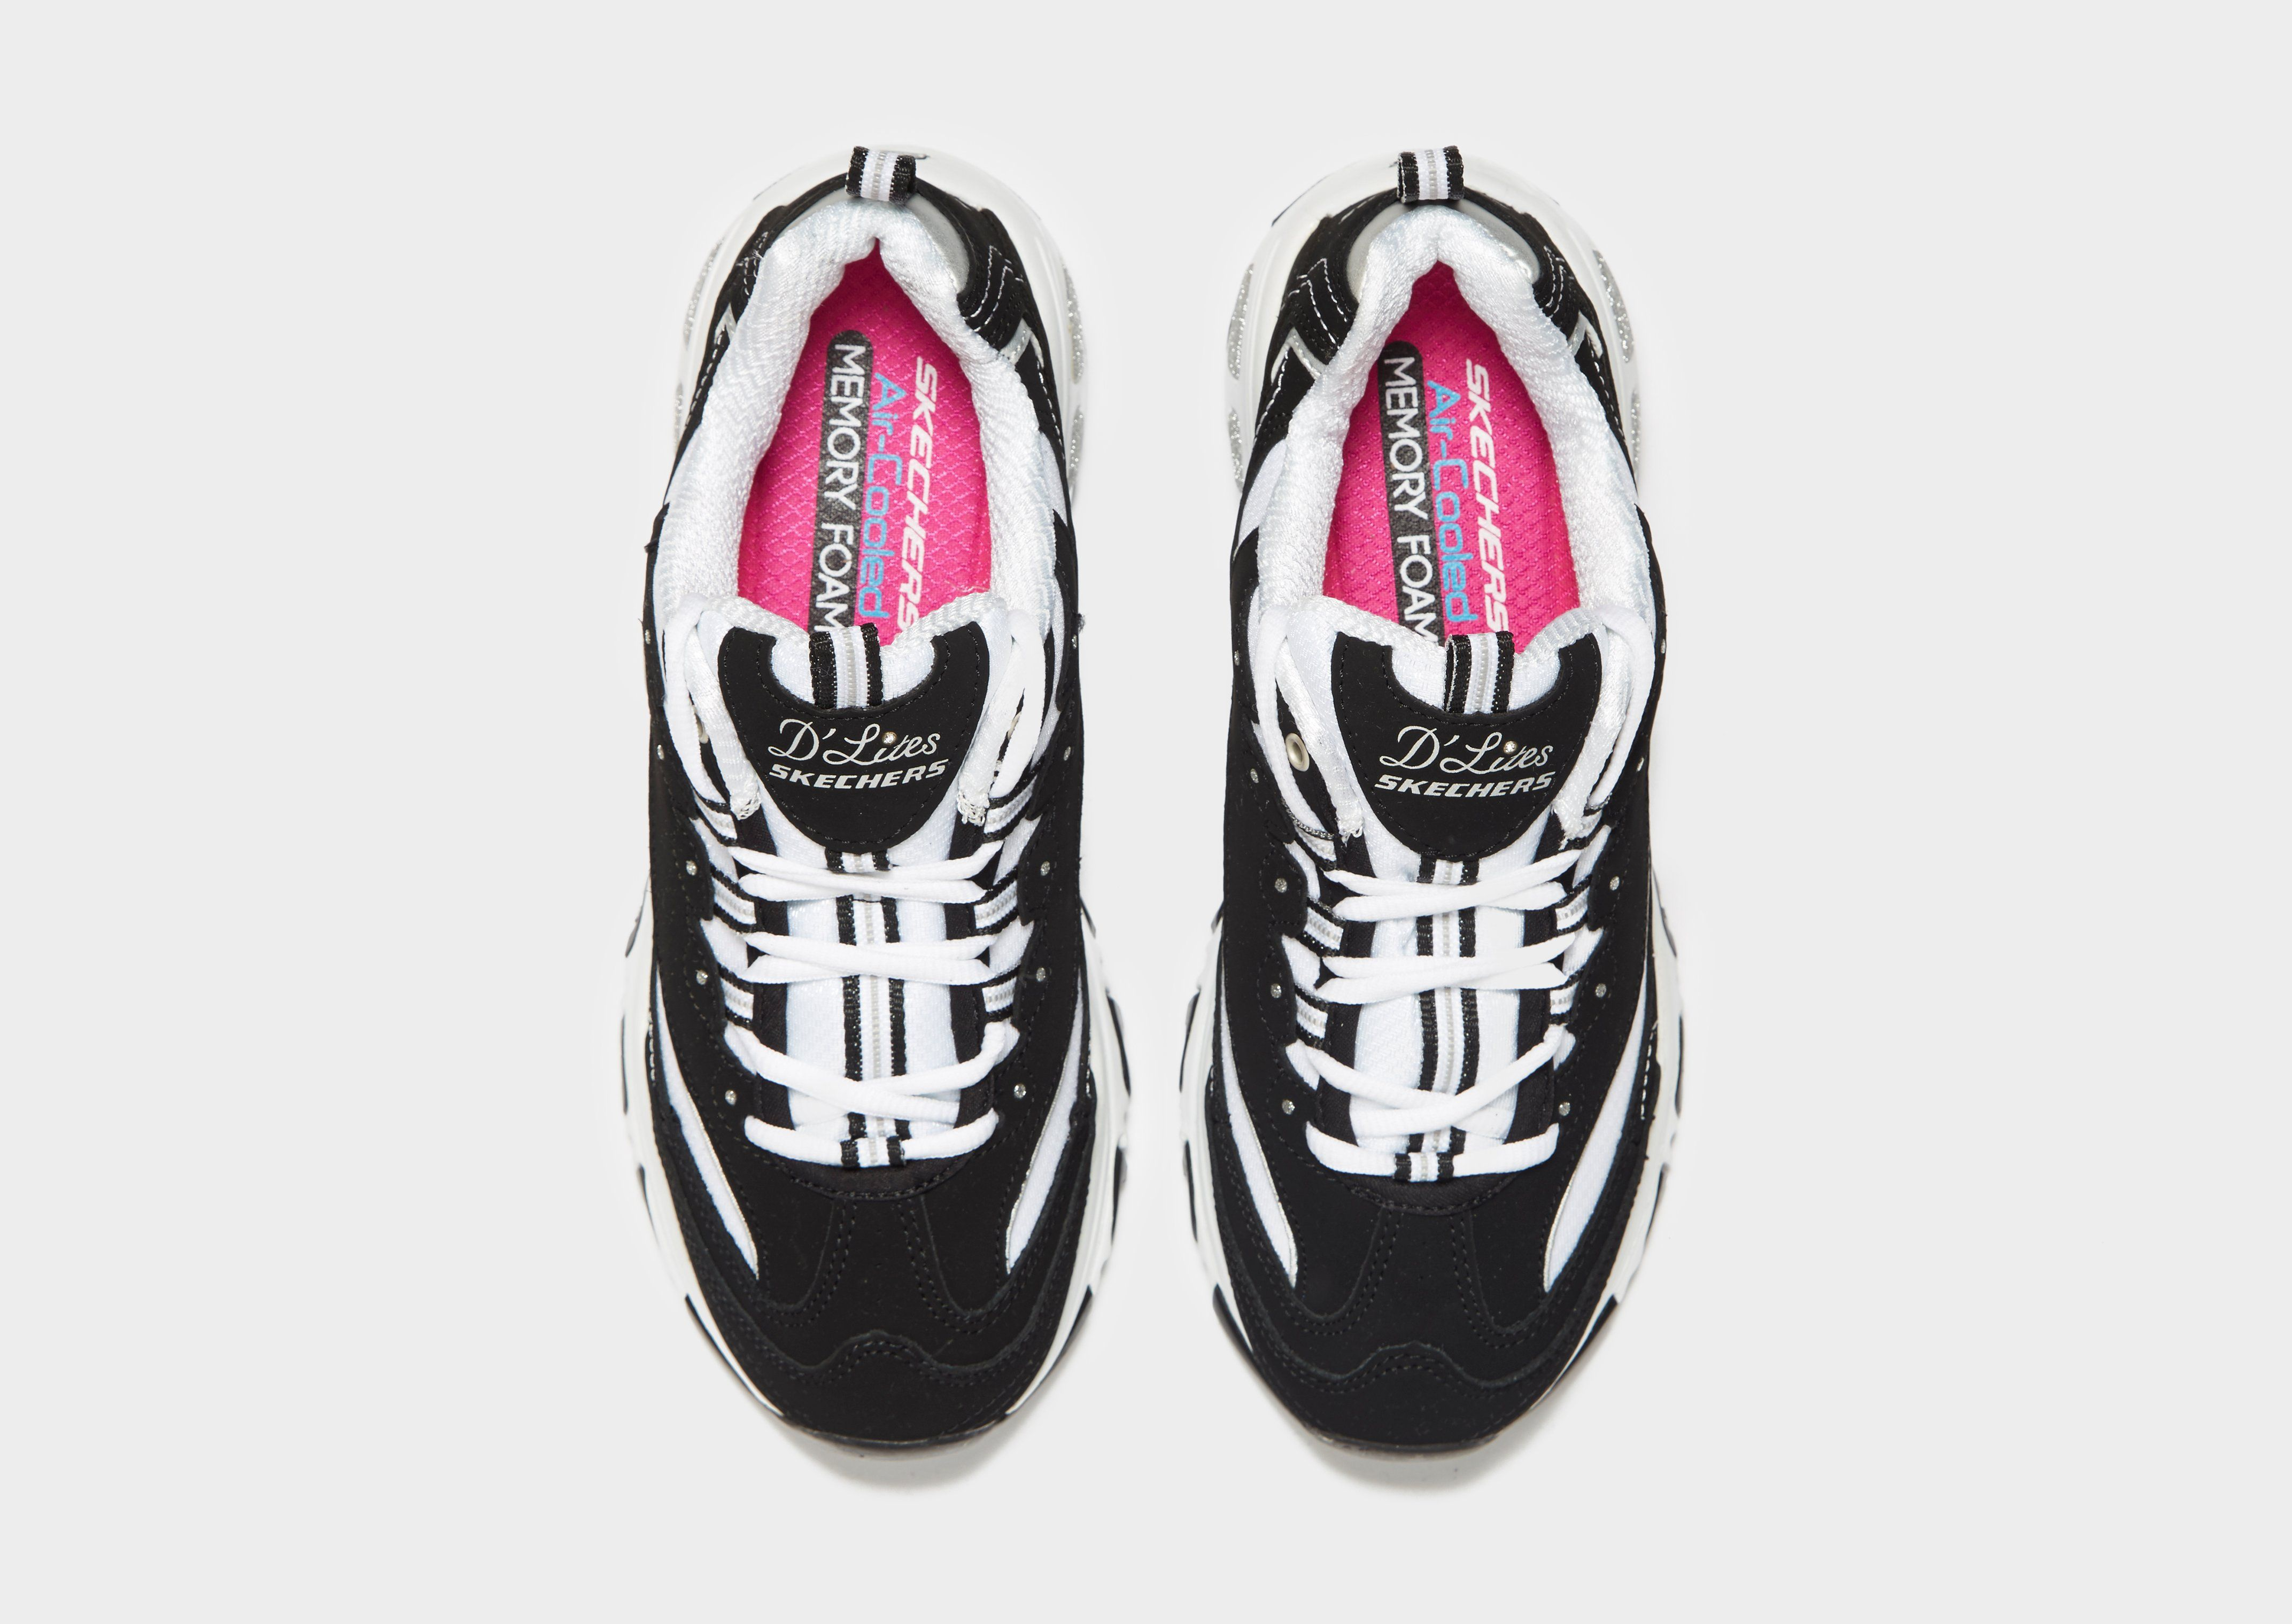 Skechers D'Lites Biggest Fan Women's